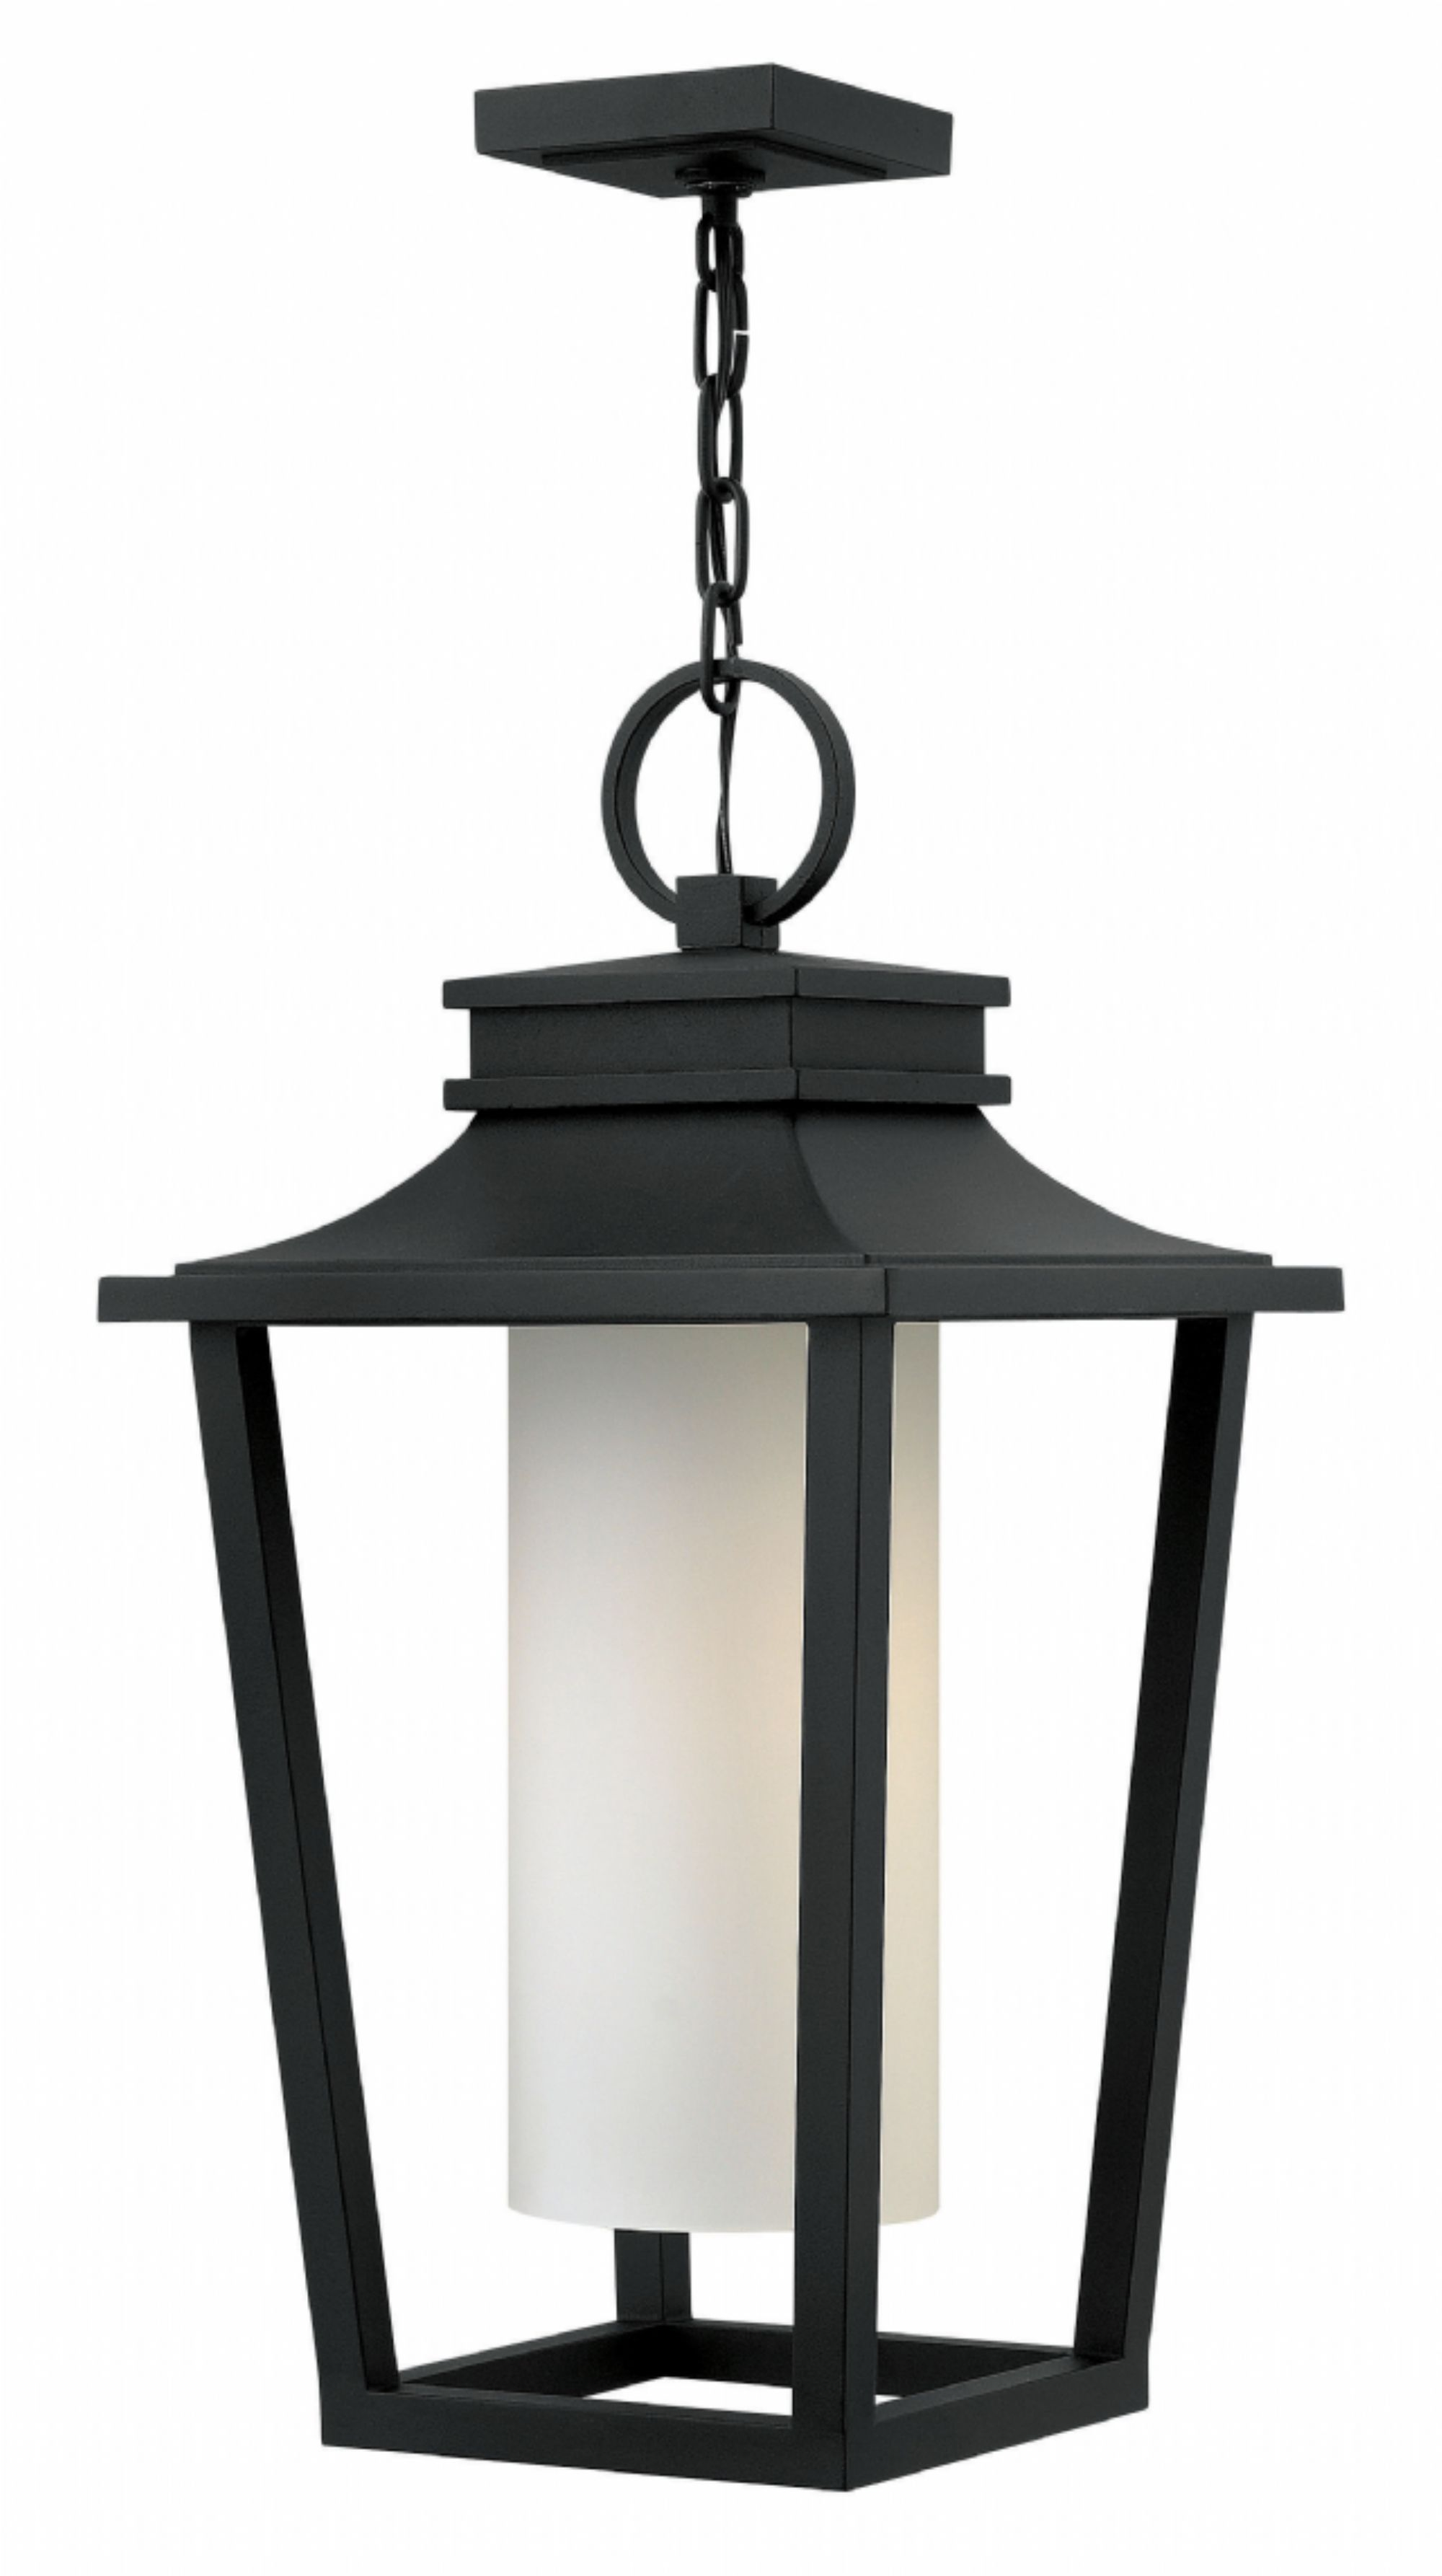 Hinkley Lighting Carries Many Black Sullivan Exterior Ceiling